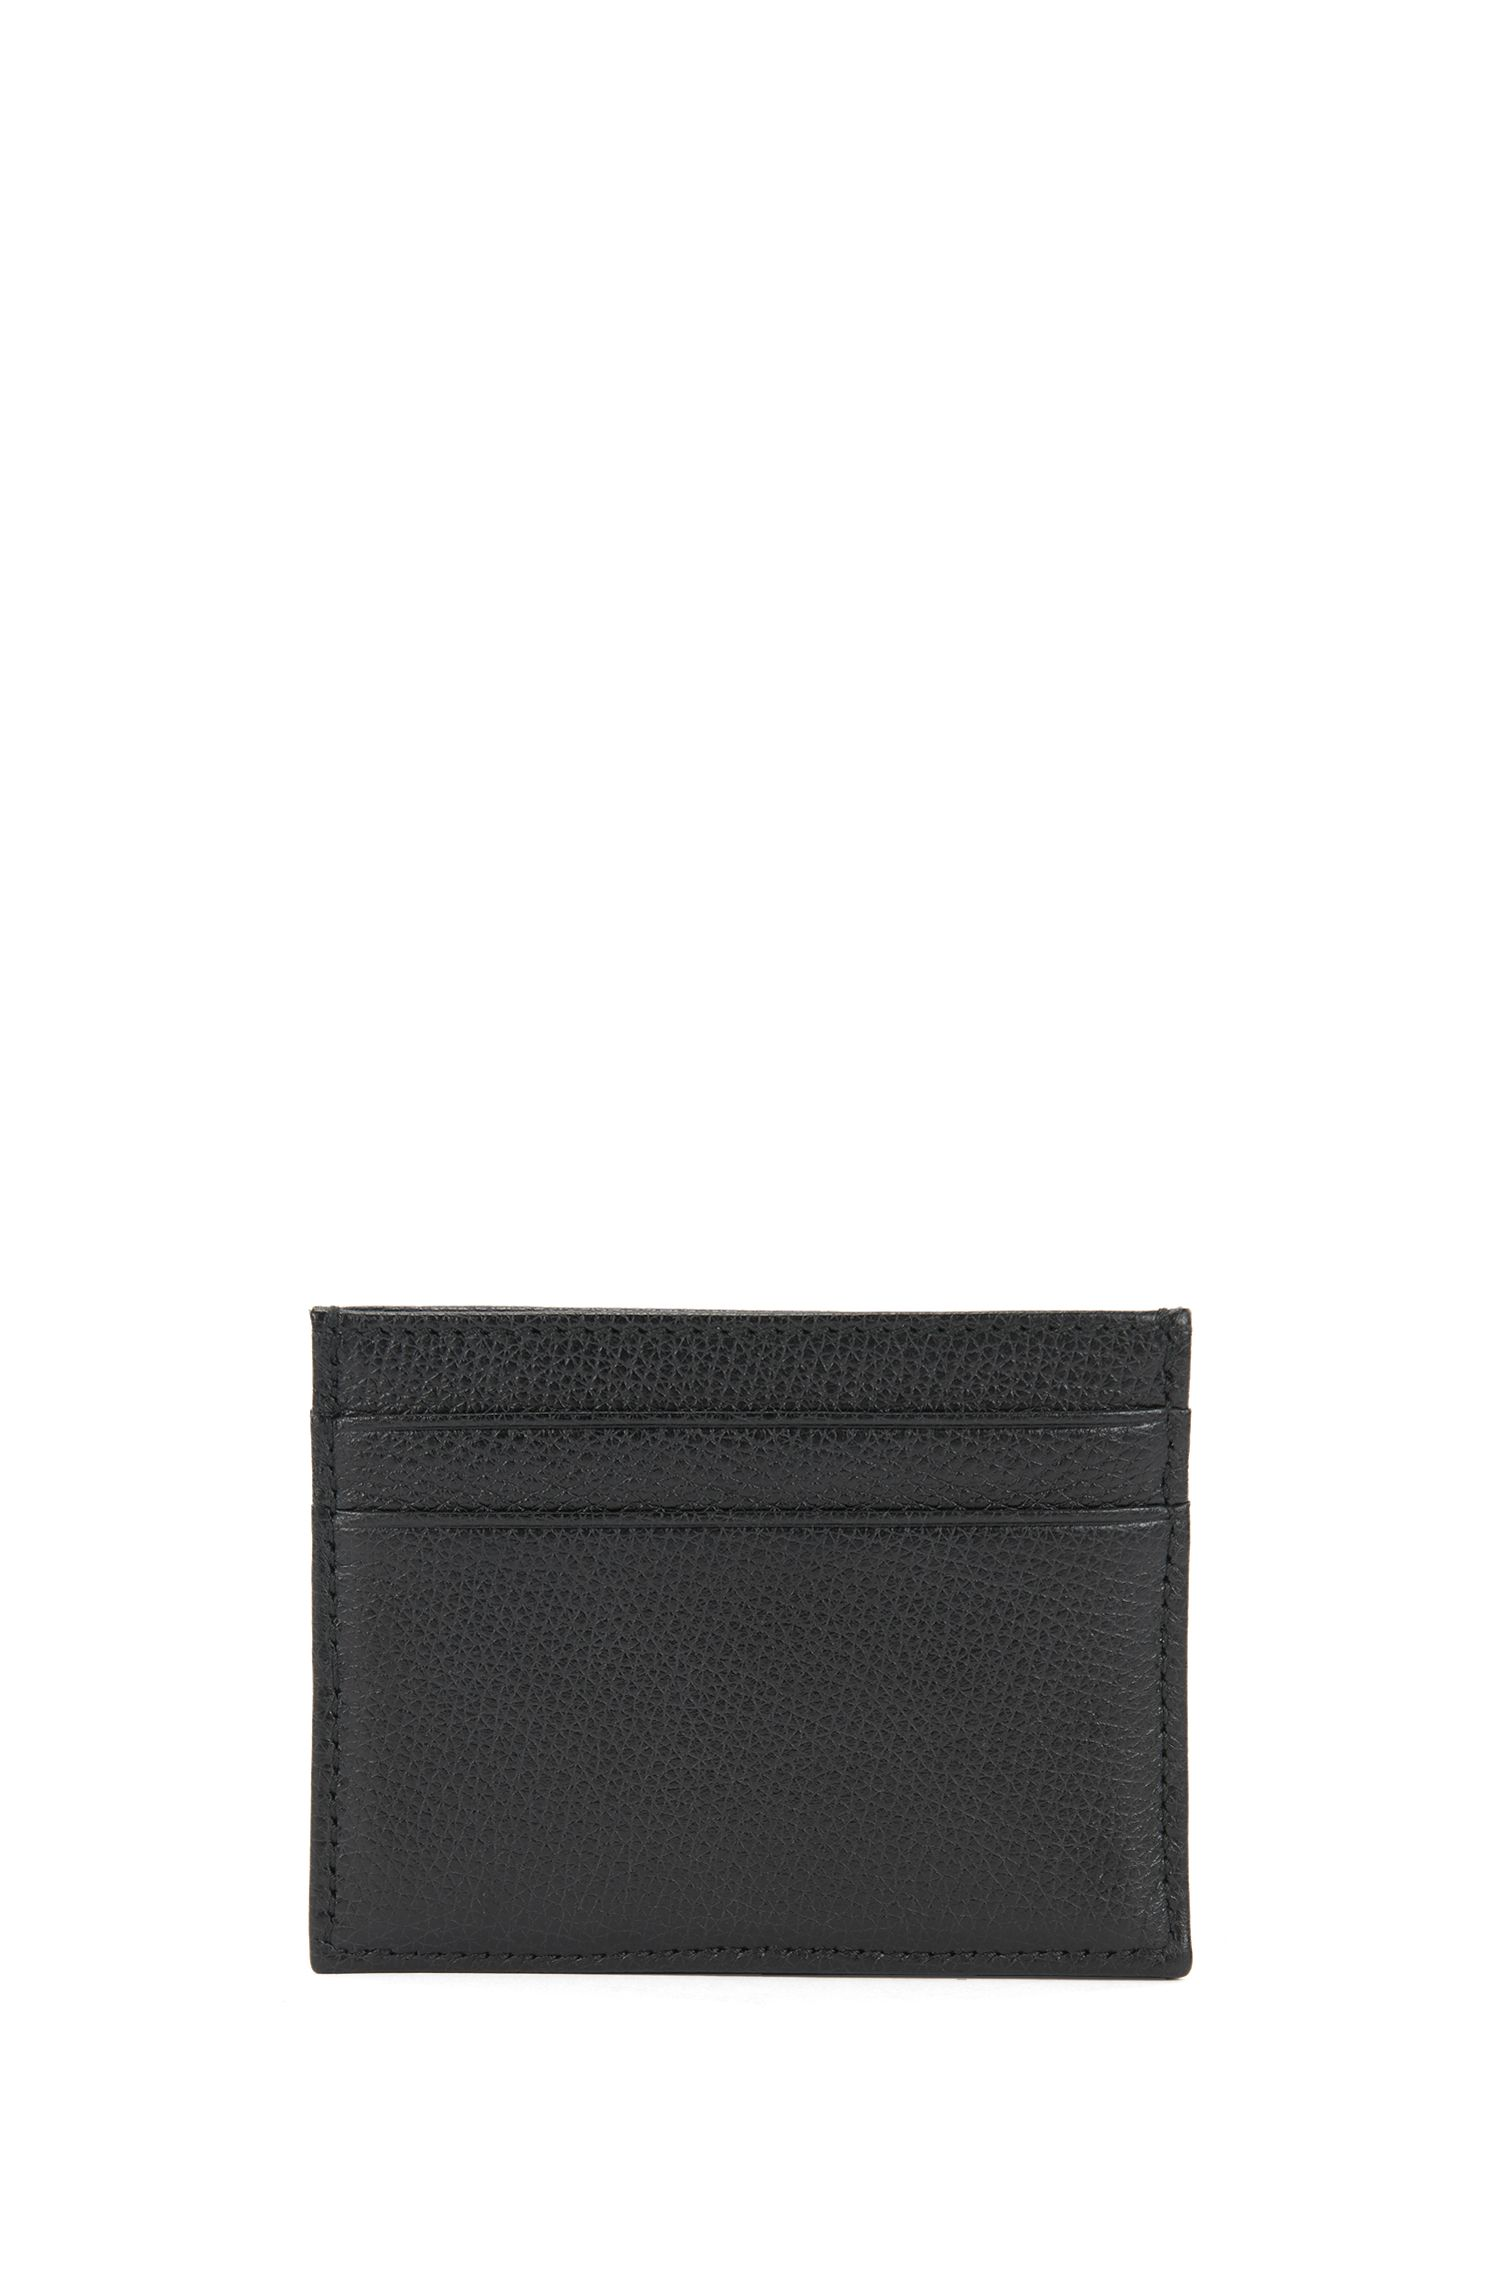 Structured card holder in Italian leather